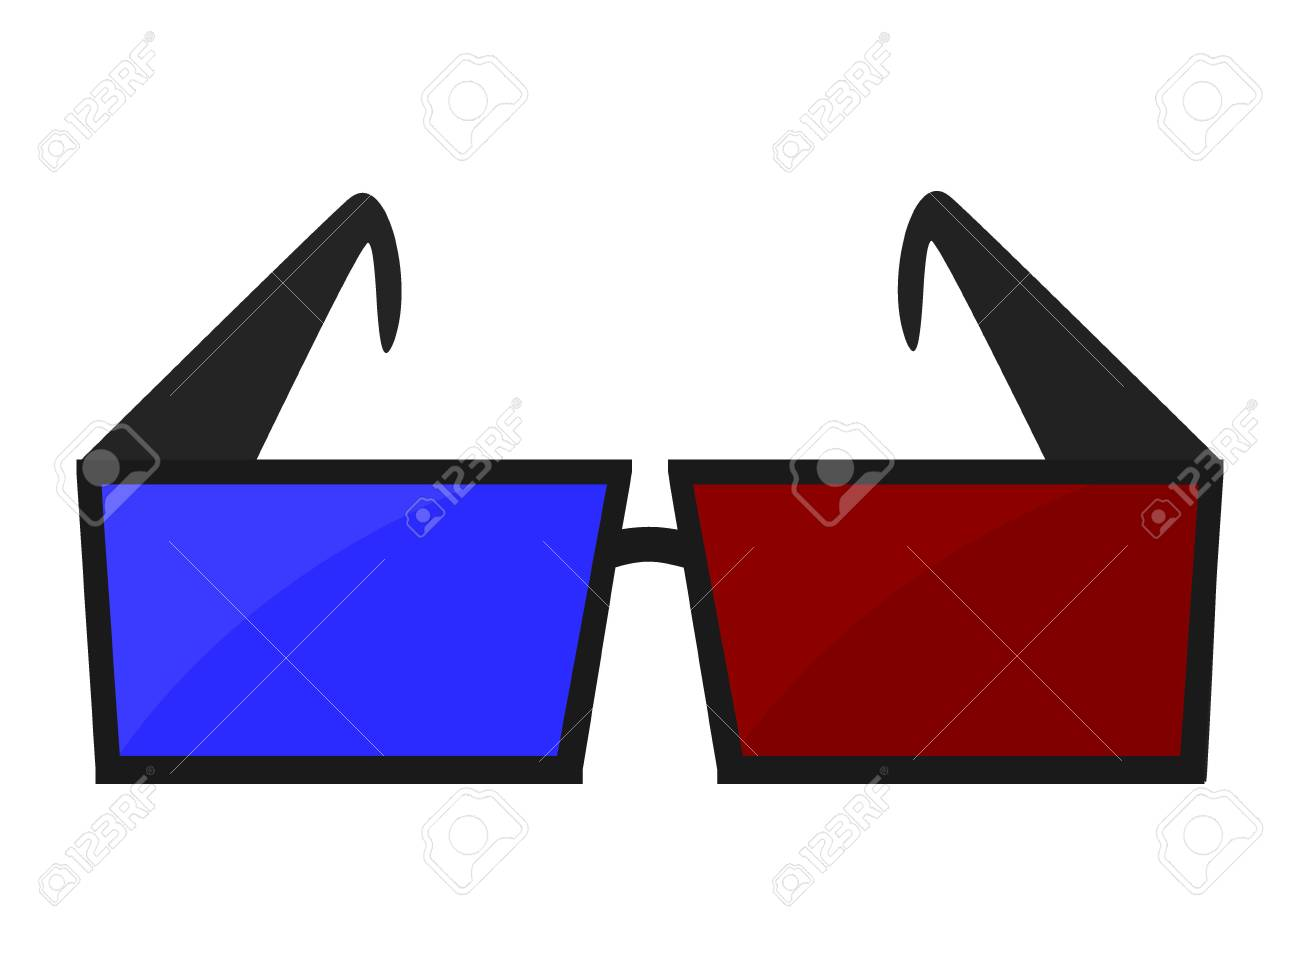 3d Movie Glasses Stock Vector - 12494269